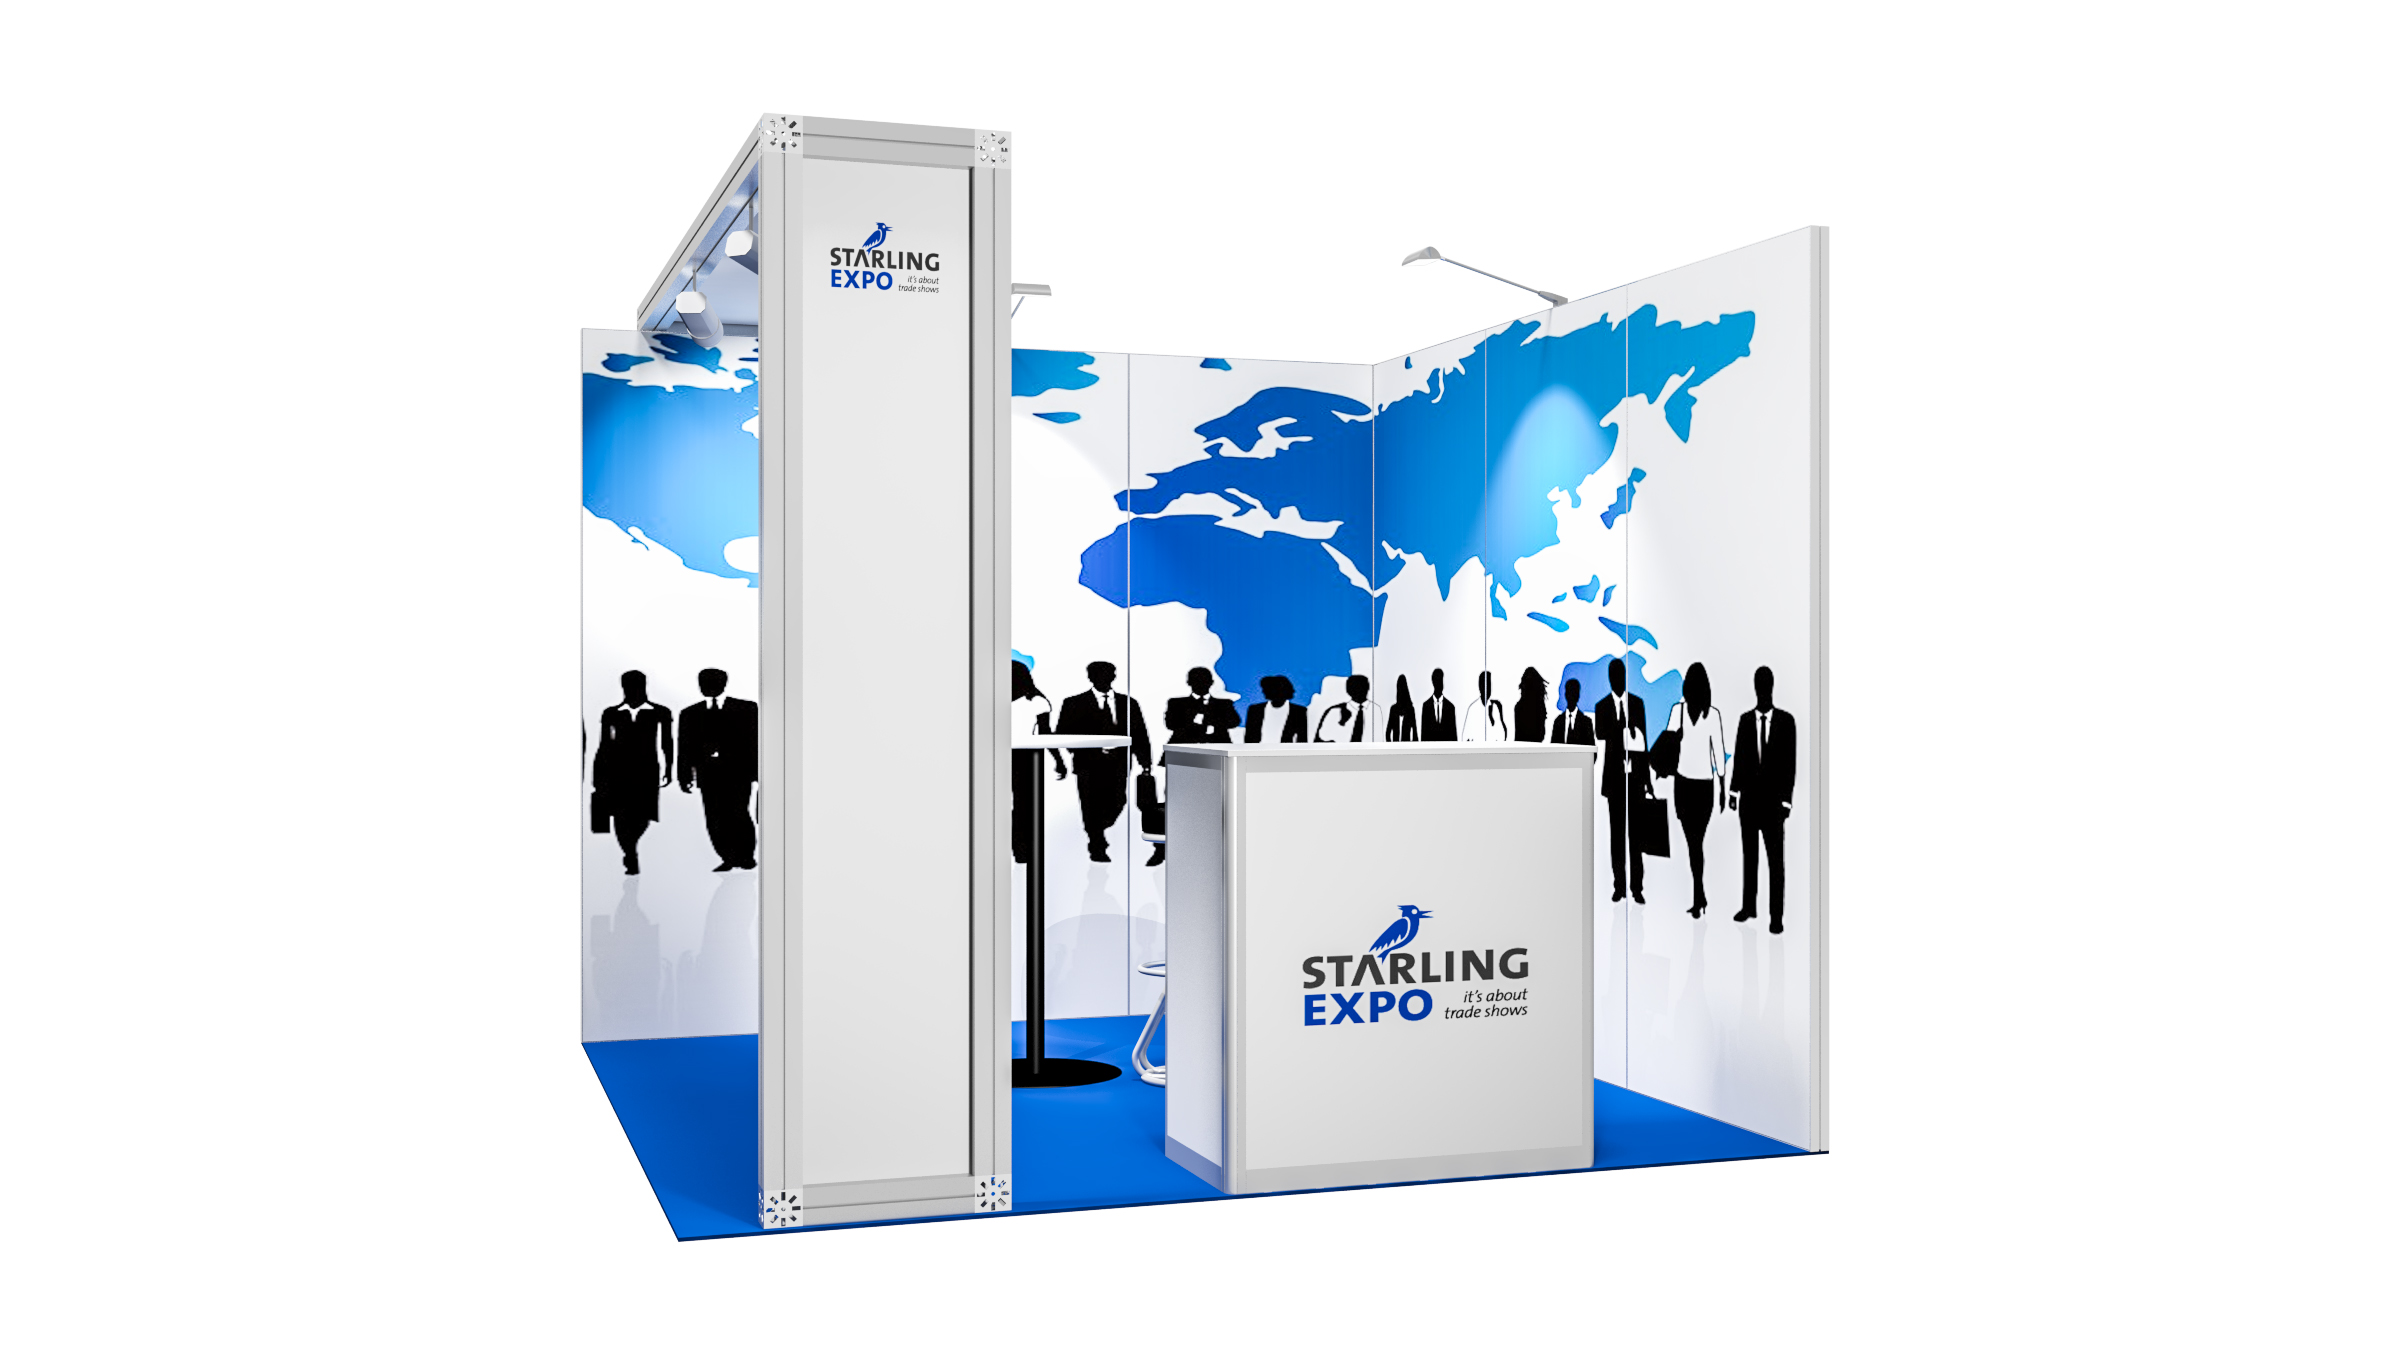 Expo Exhibition Stands Up : China expo platform new design jewellery exhibition booth stands